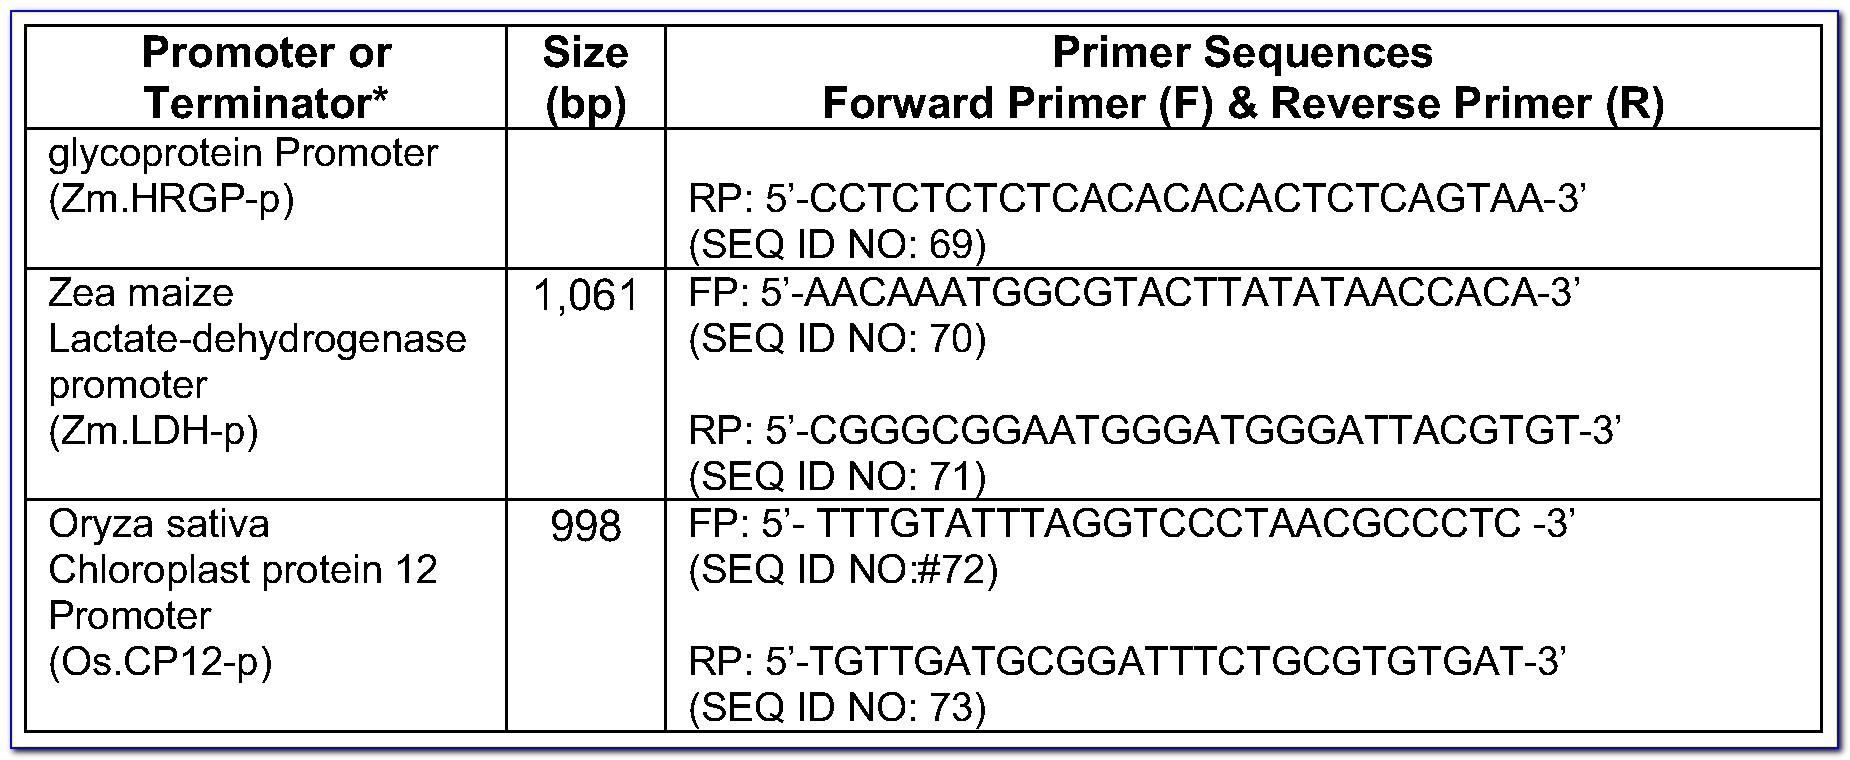 Expandtm Long Template Pcr System Protocol